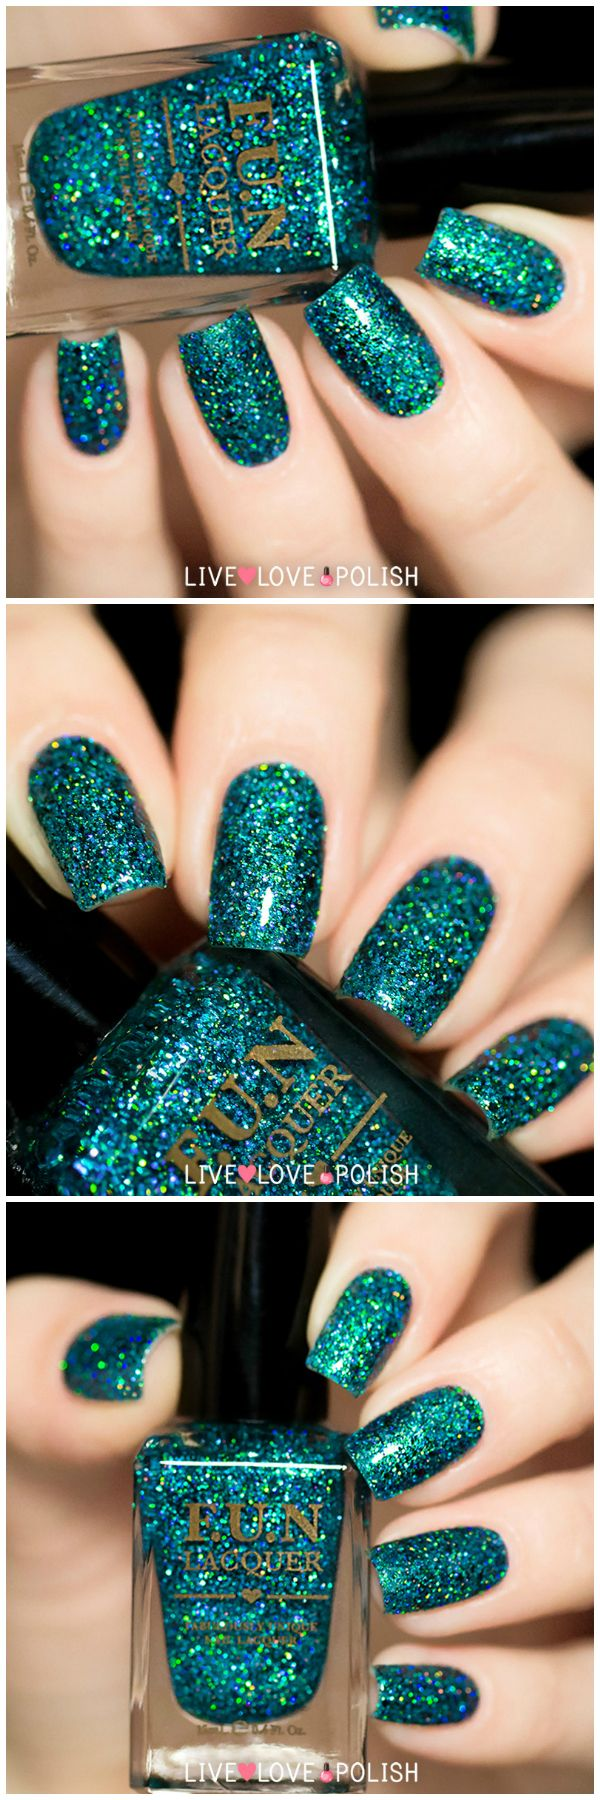 Loving this teal colour sorry for not pinning much on this board i am very picky hopefully you forgive me xxx